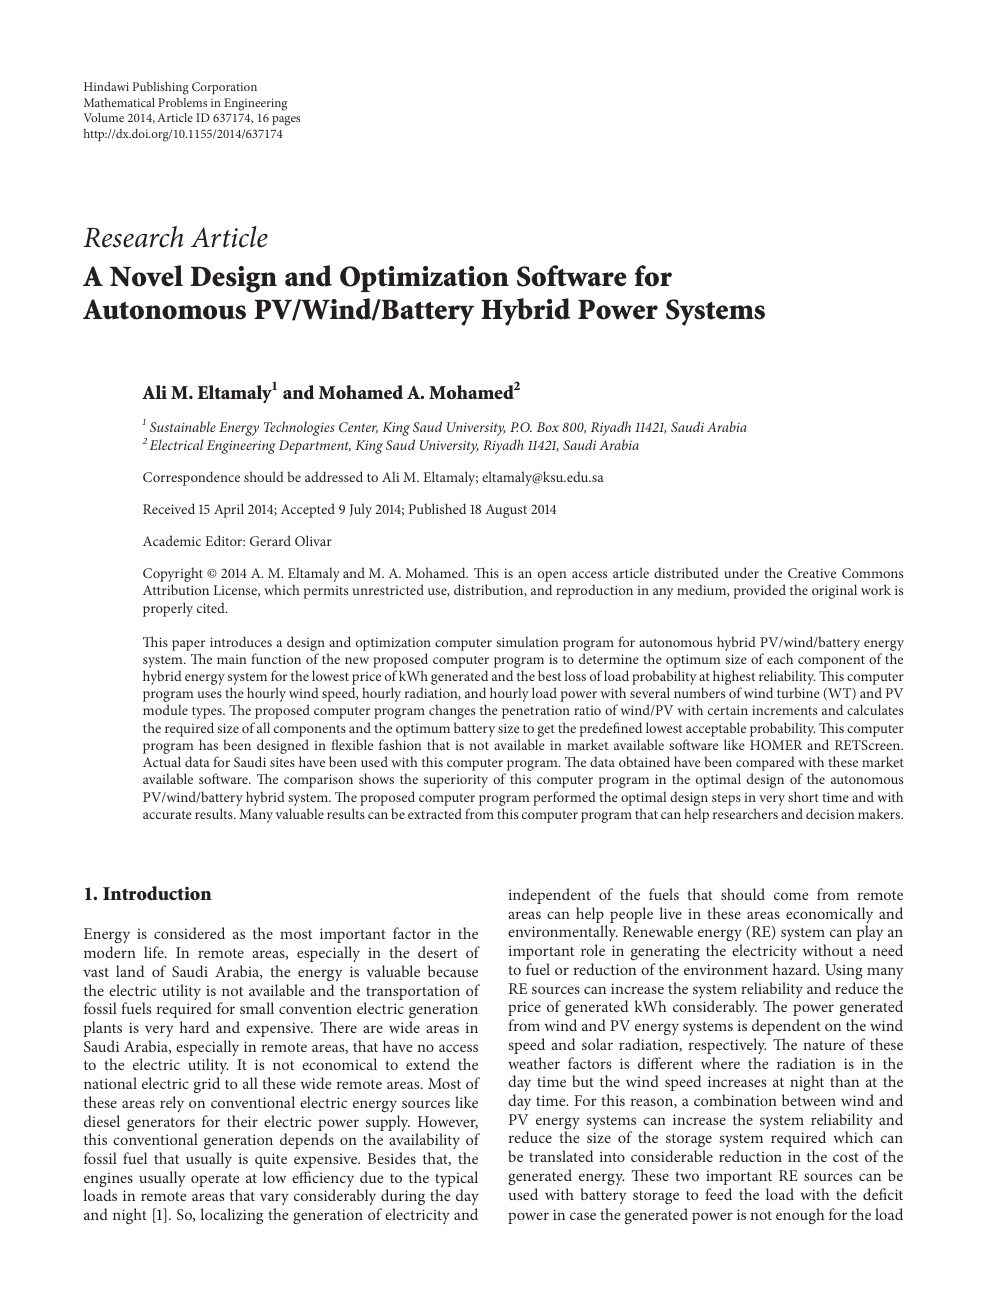 A Novel Design And Optimization Software For Autonomous Pv Wind Battery Hybrid Power Systems Topic Of Research Paper In Electrical Engineering Electronic Engineering Information Engineering Download Scholarly Article Pdf And Read For Free